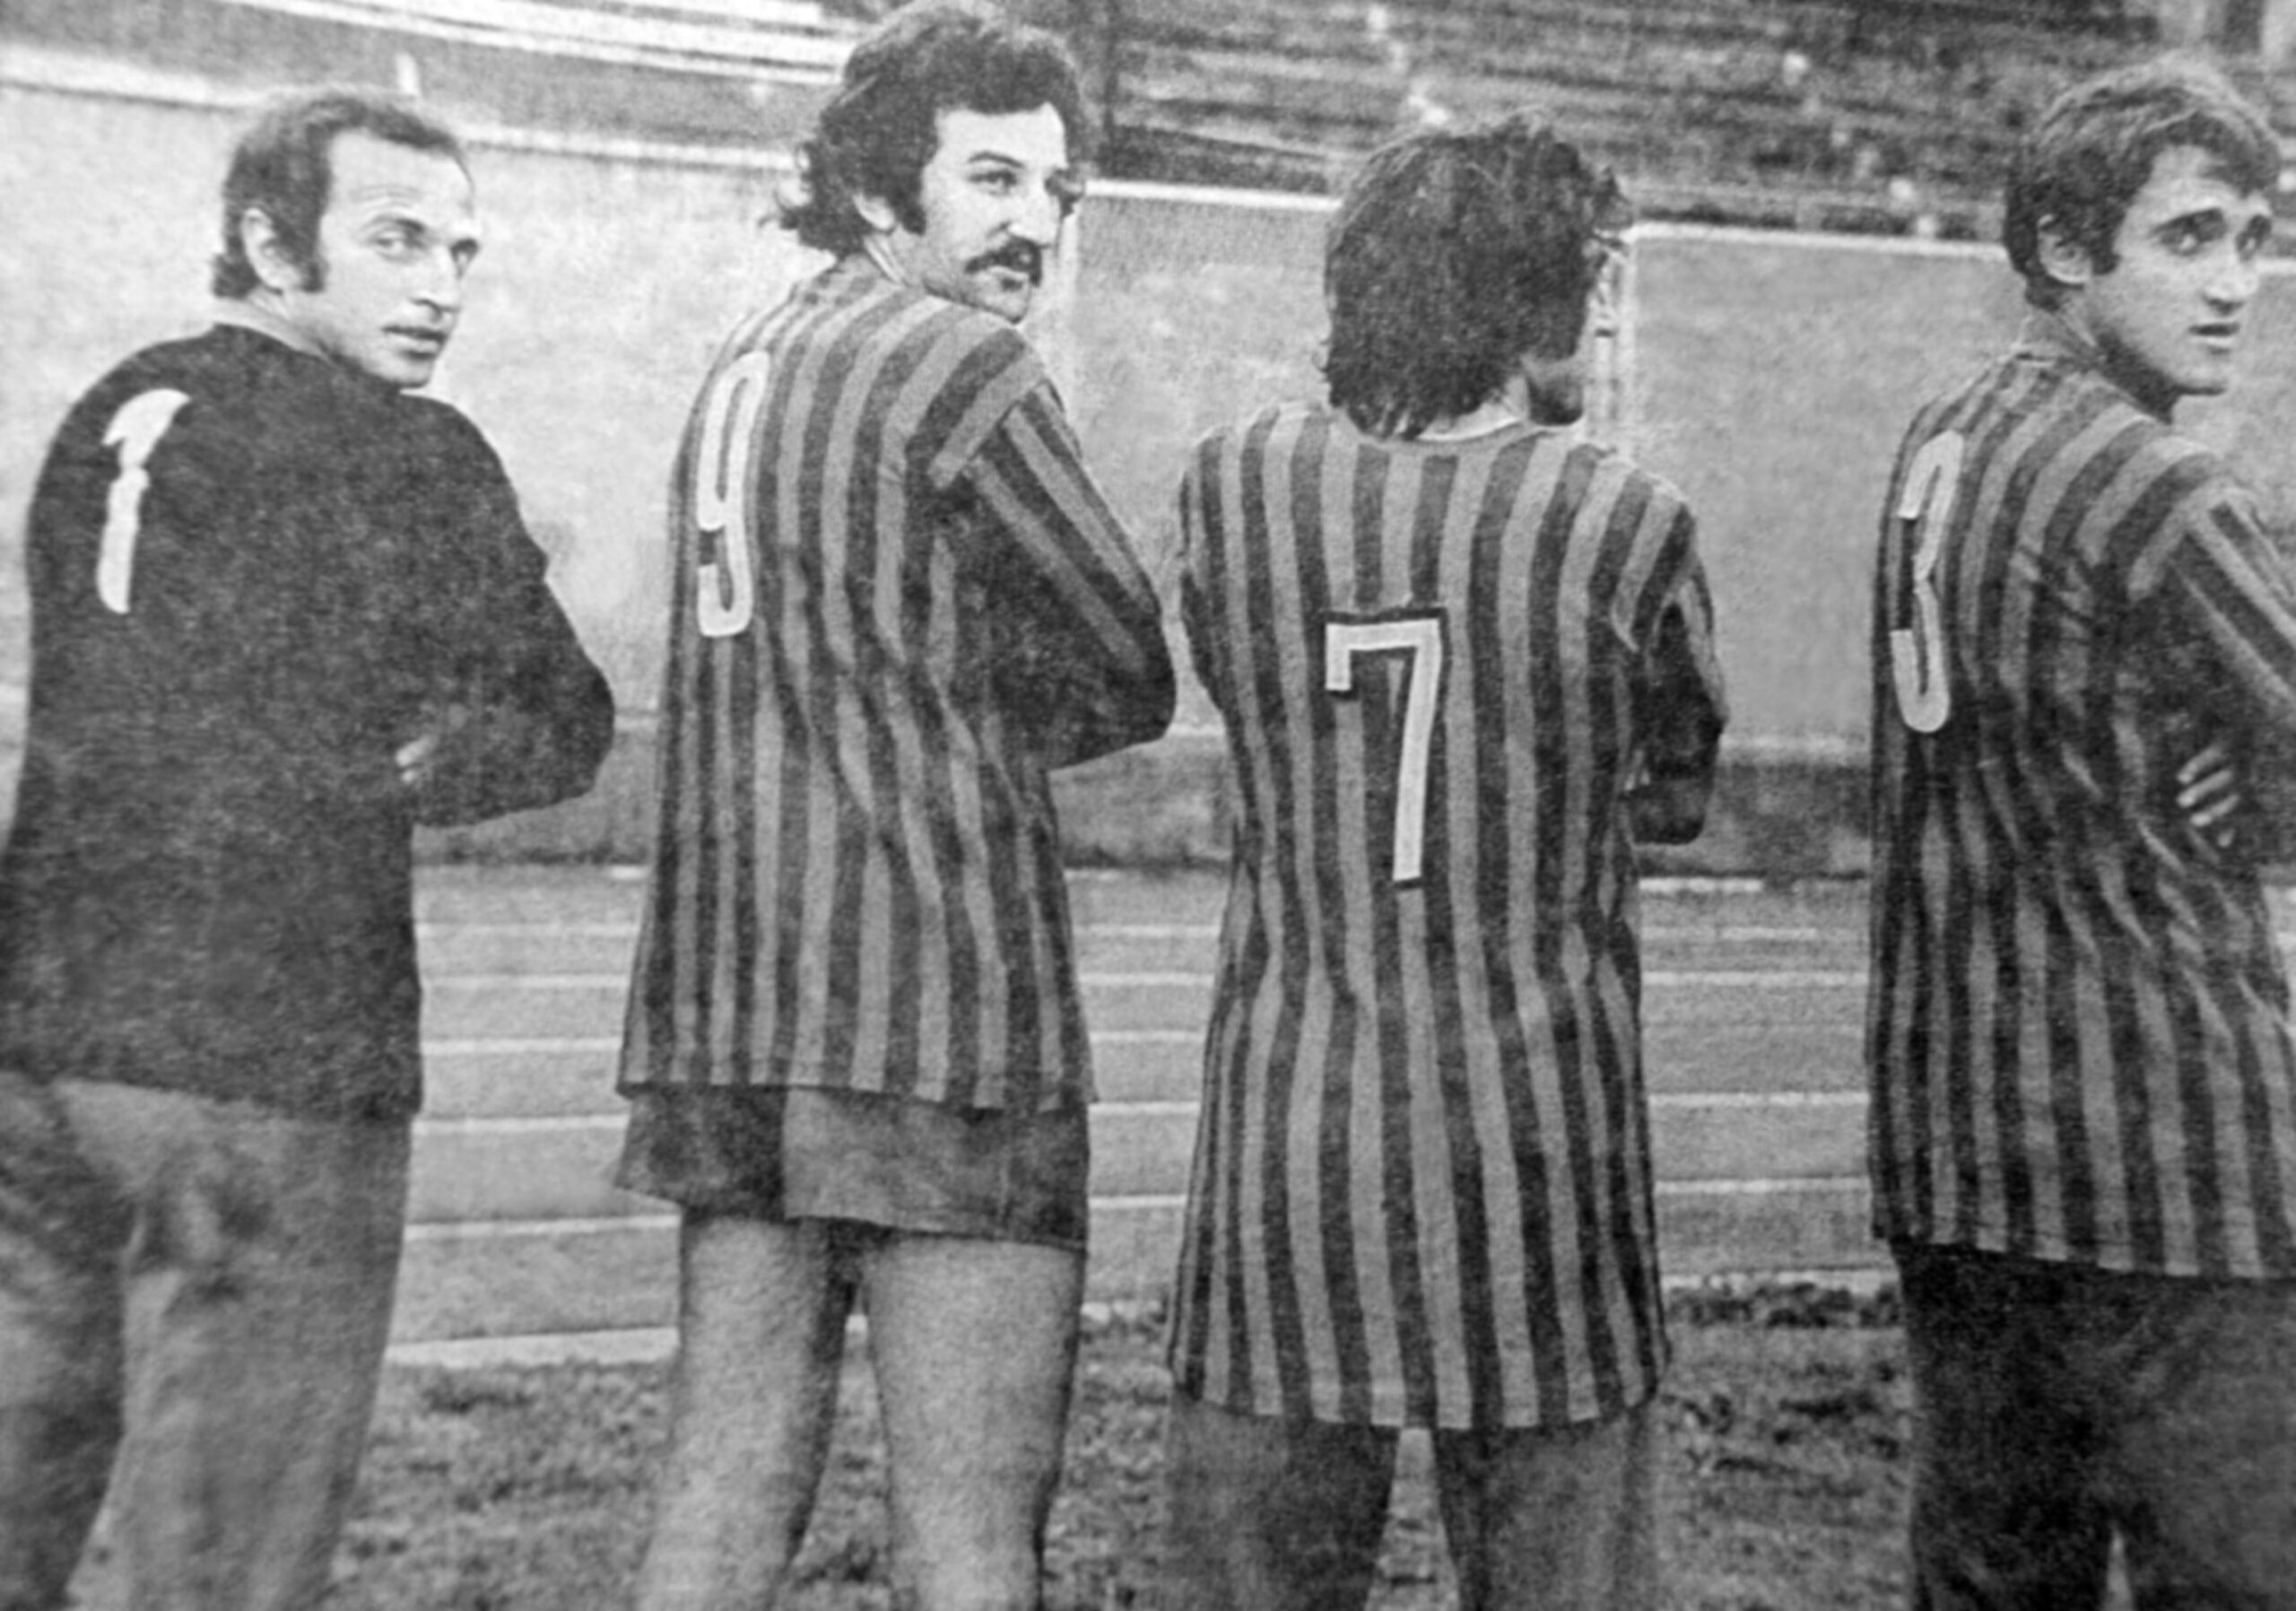 Picat Re Catania 1973